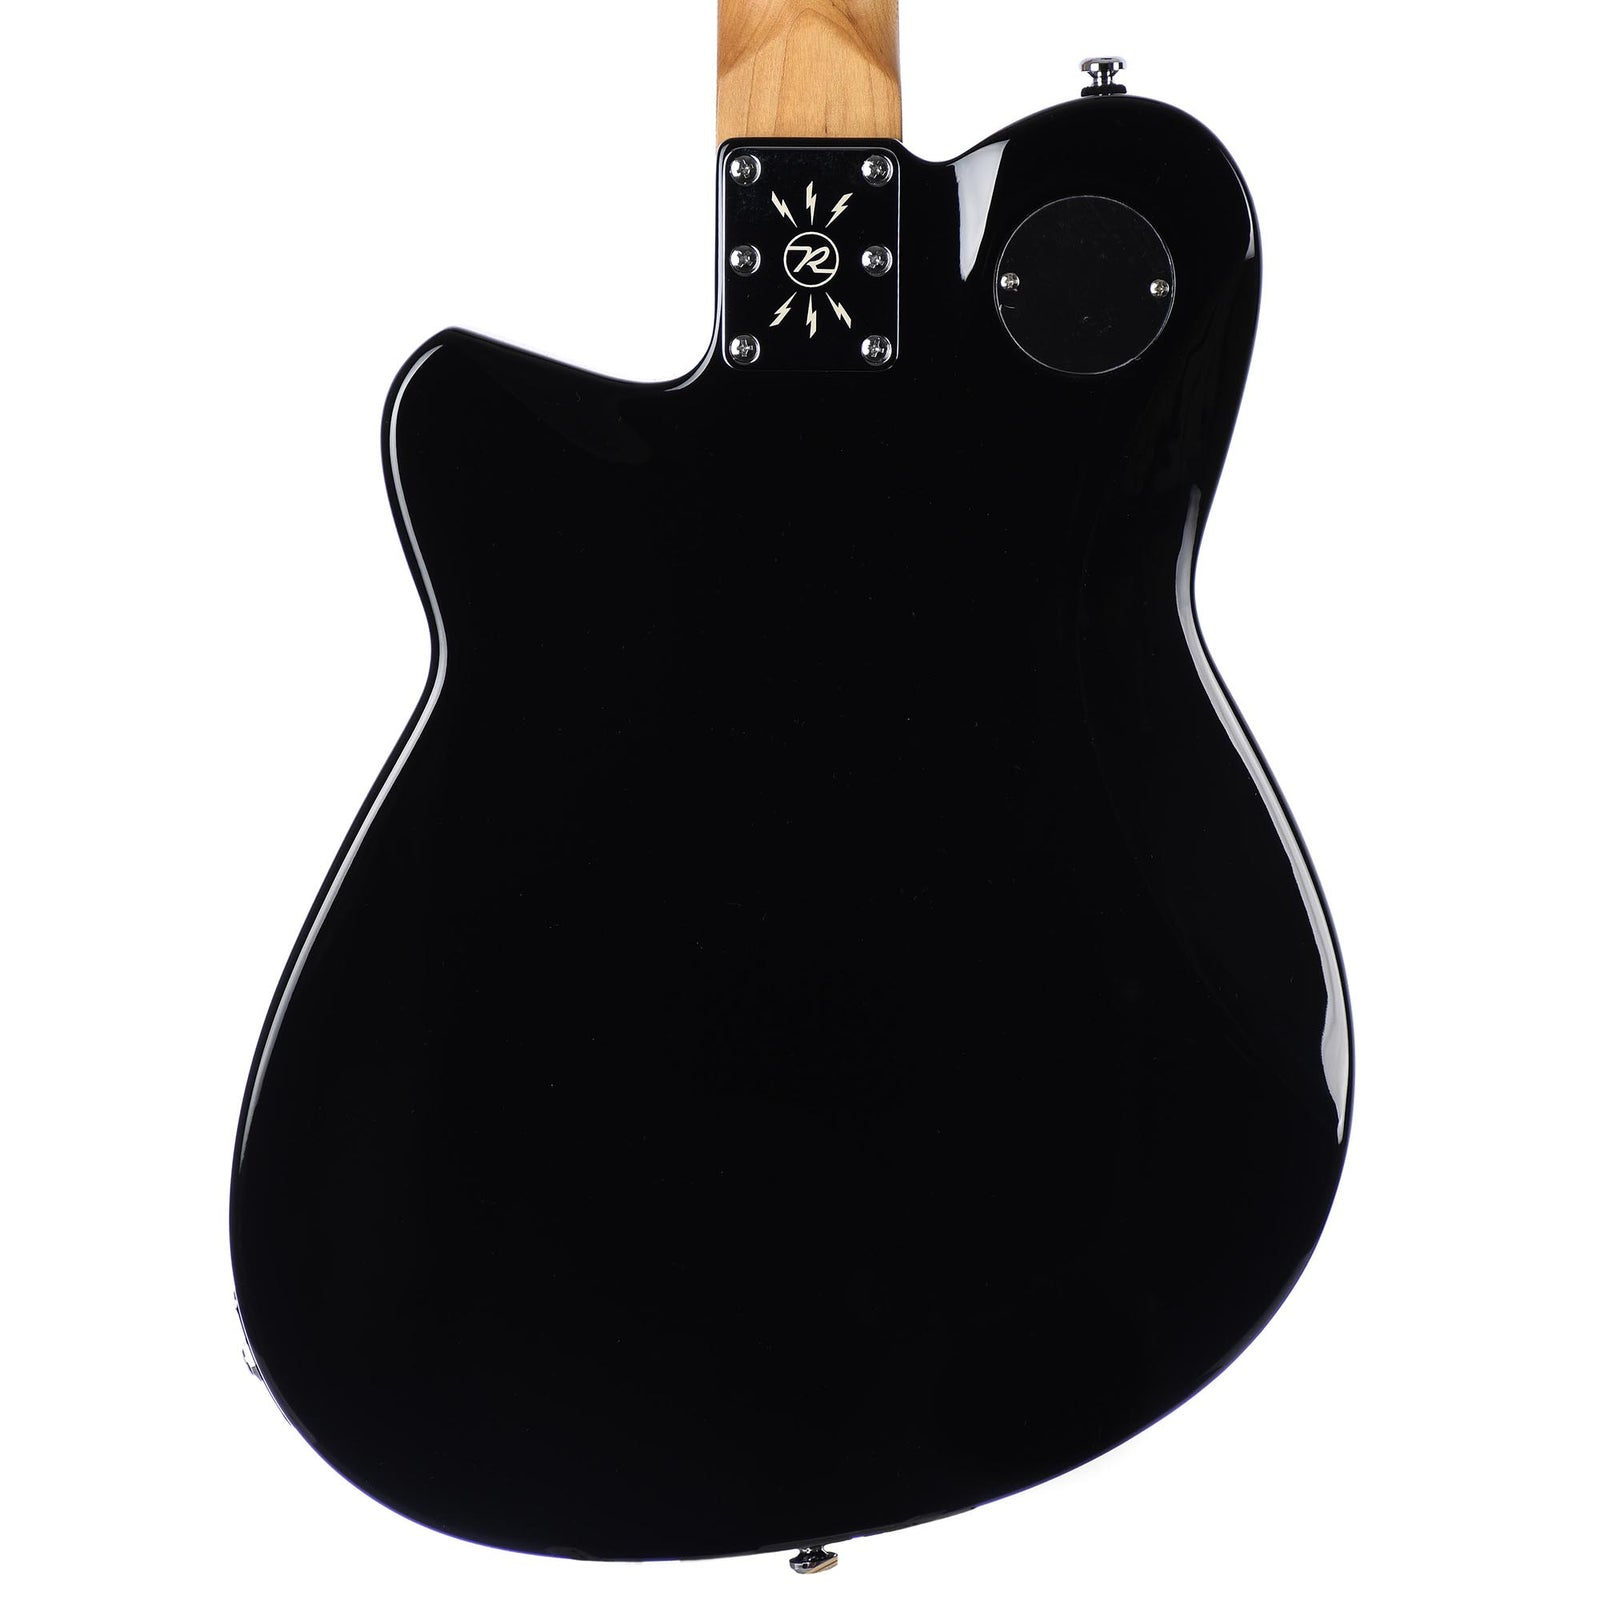 Reverend Double Agent OG - Roasted Neck - Midnight Black